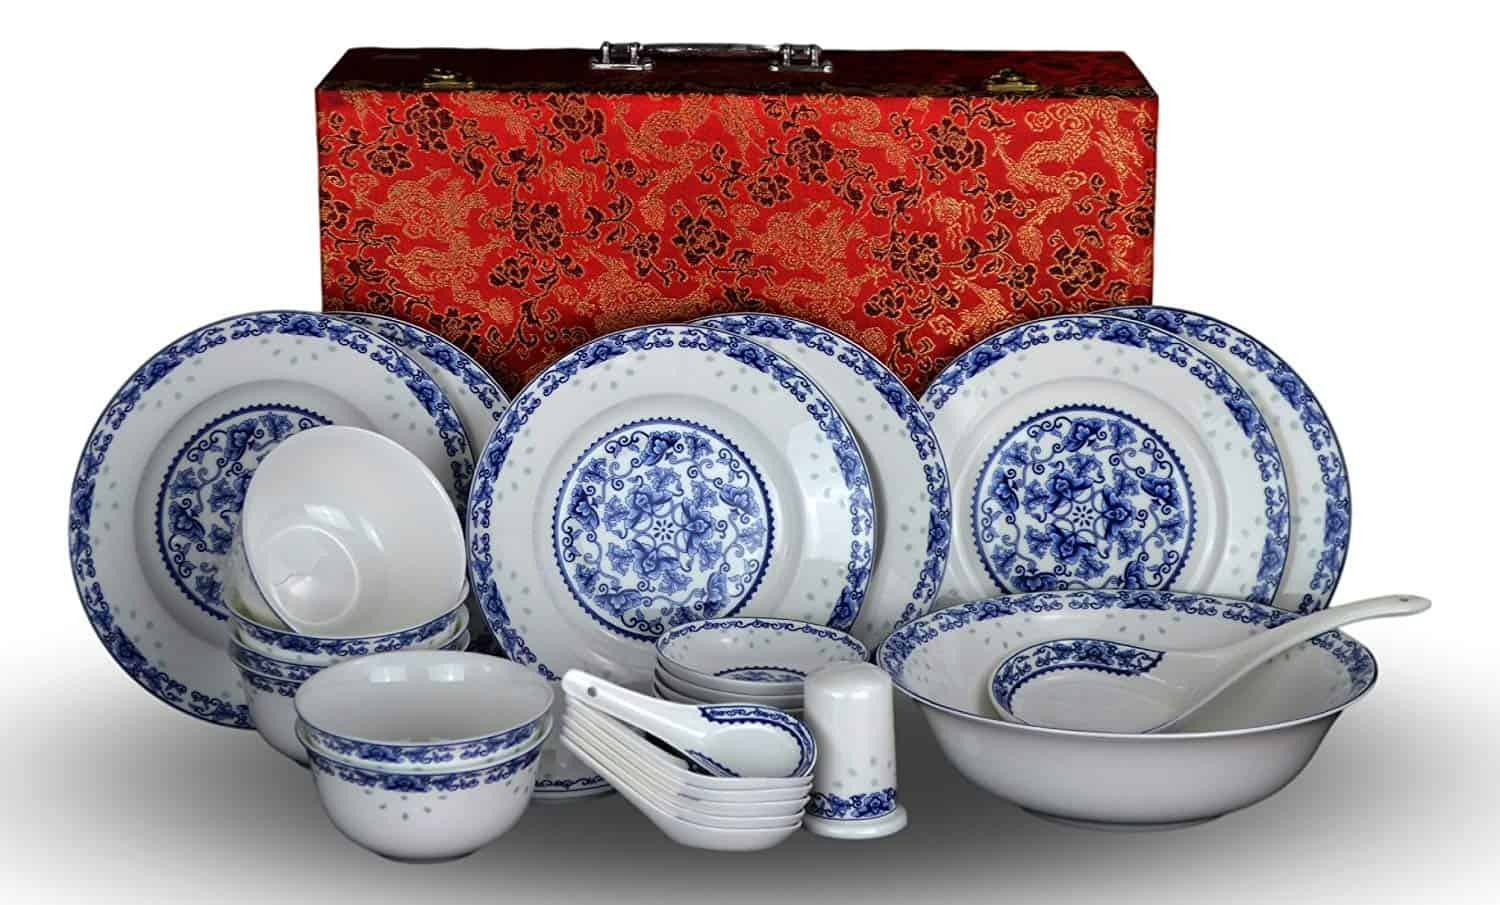 The premium set comes with 28 pieces of bone china dinnerware, shinning like jade, with elegant touch of tradition.